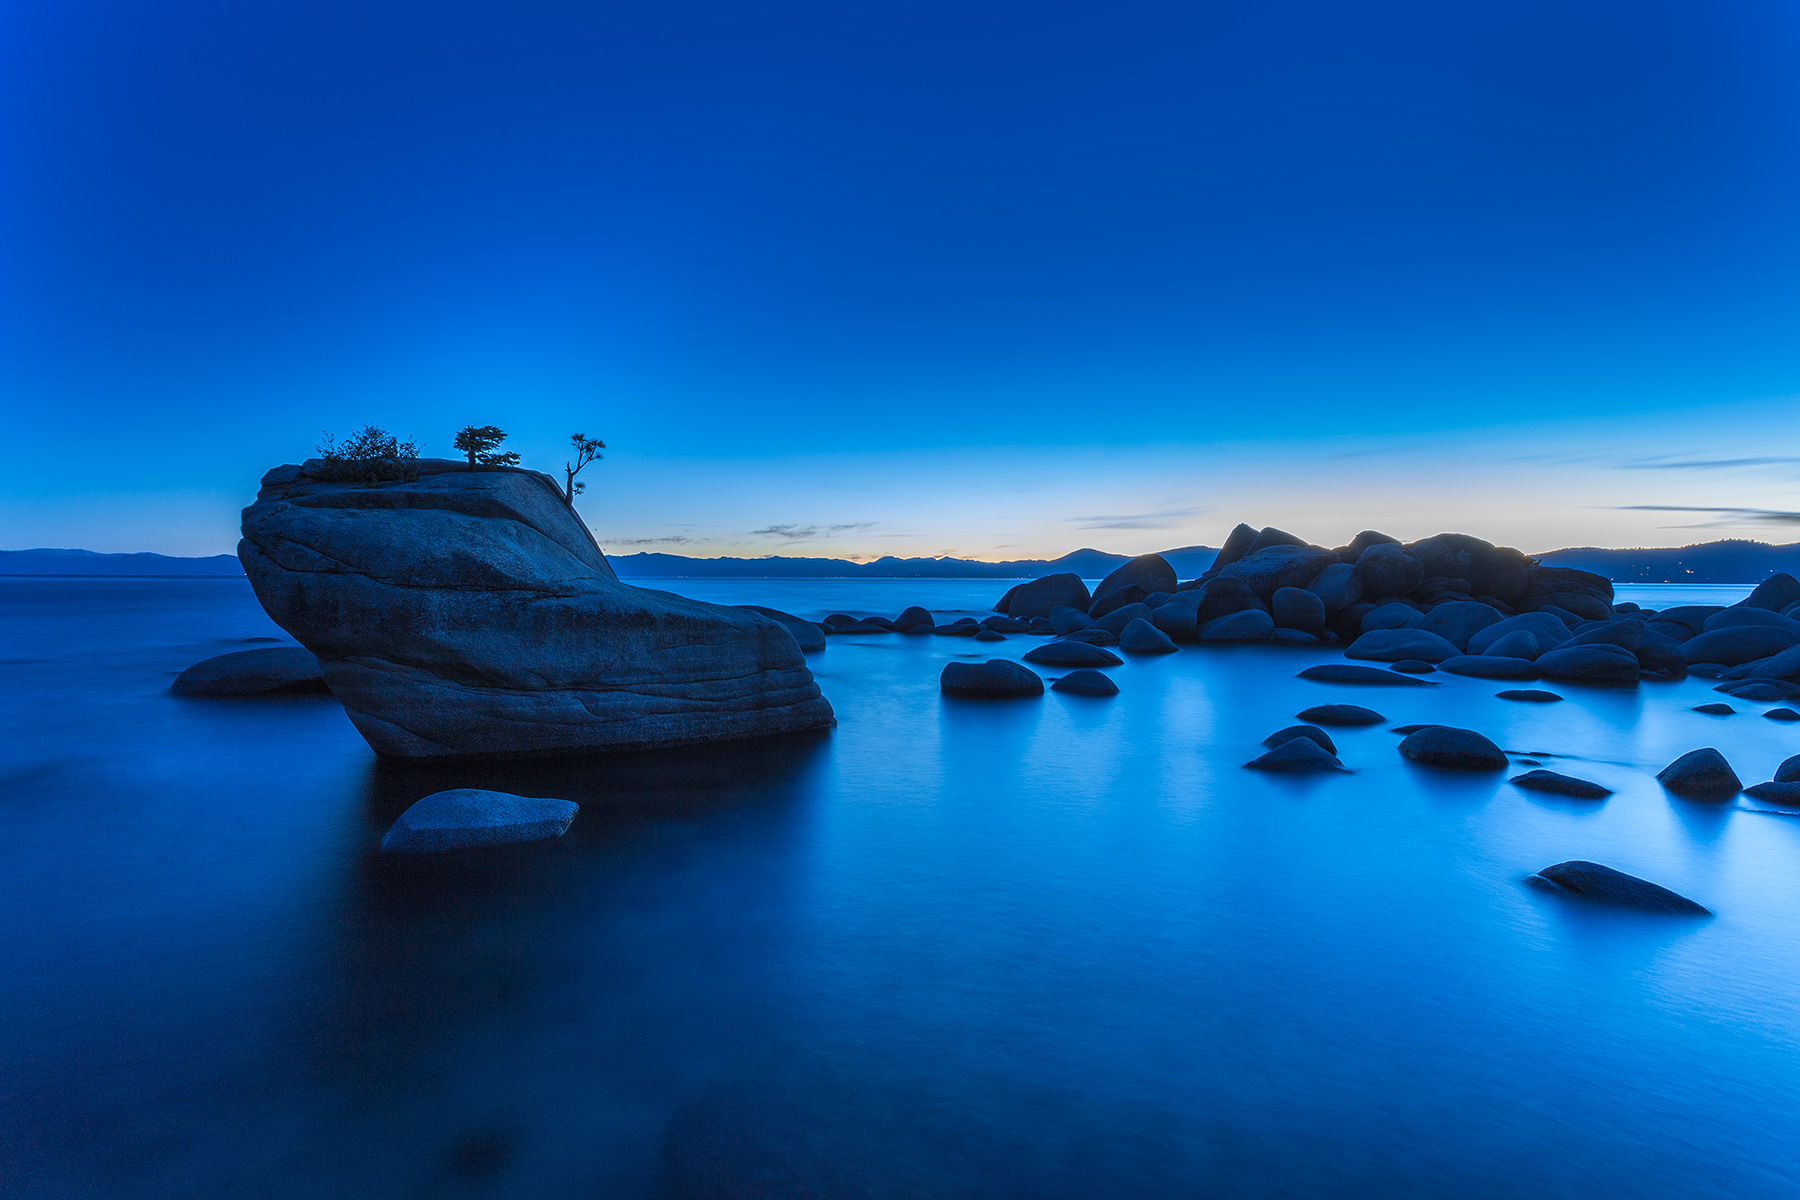 bonsai_rock